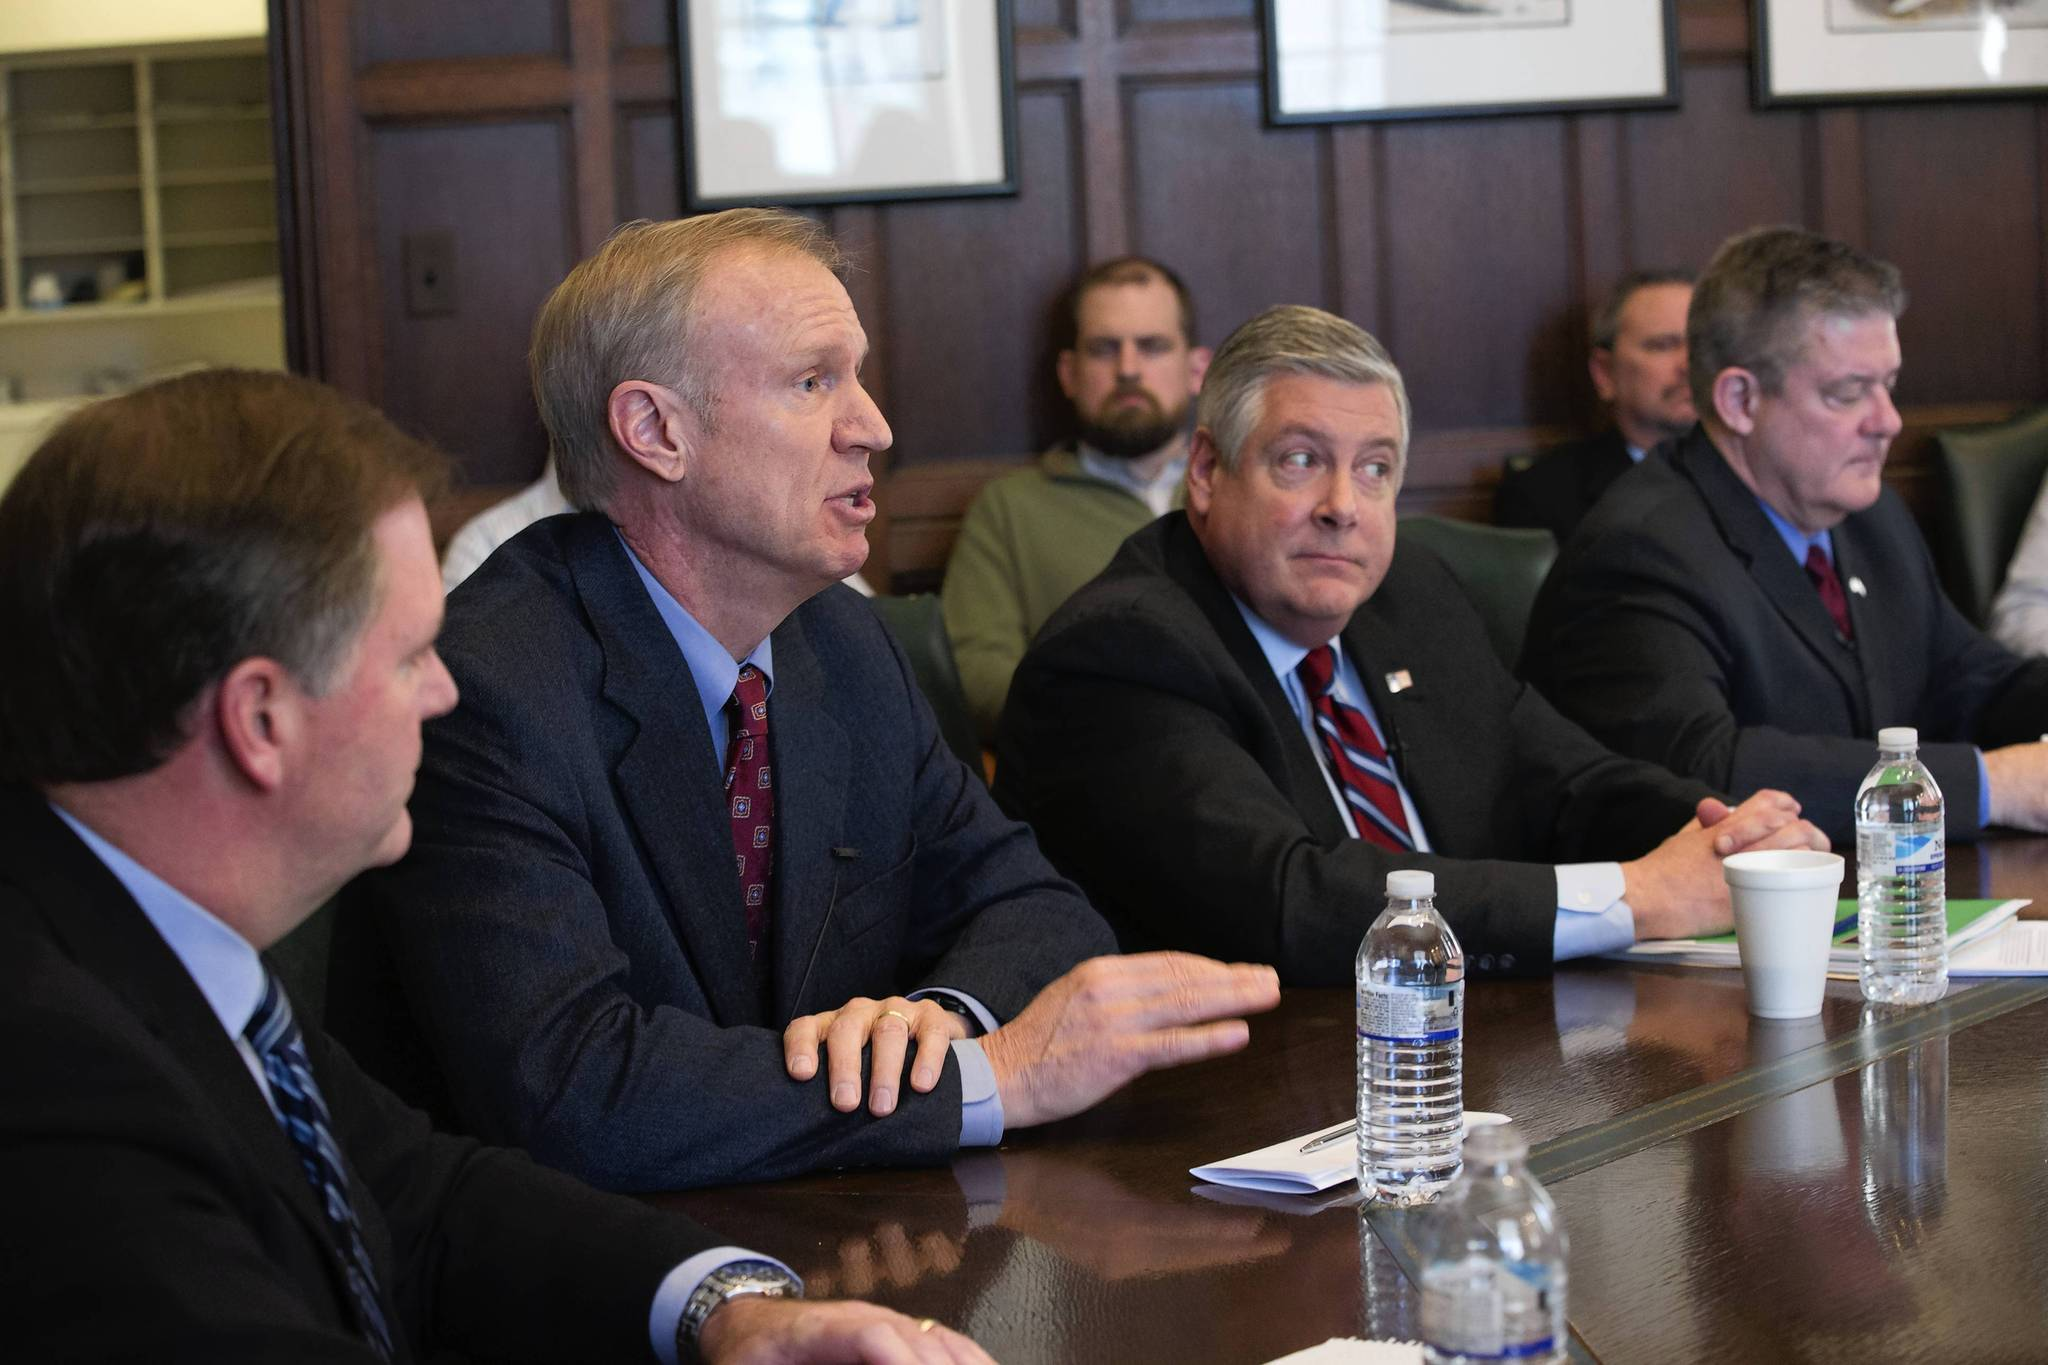 Republican gubernatorial candidates from left, Bill Brady, Bruce Rauner, Kirk Dillard and Dan Rutherford met with the Tribune's editorial board on Monday.